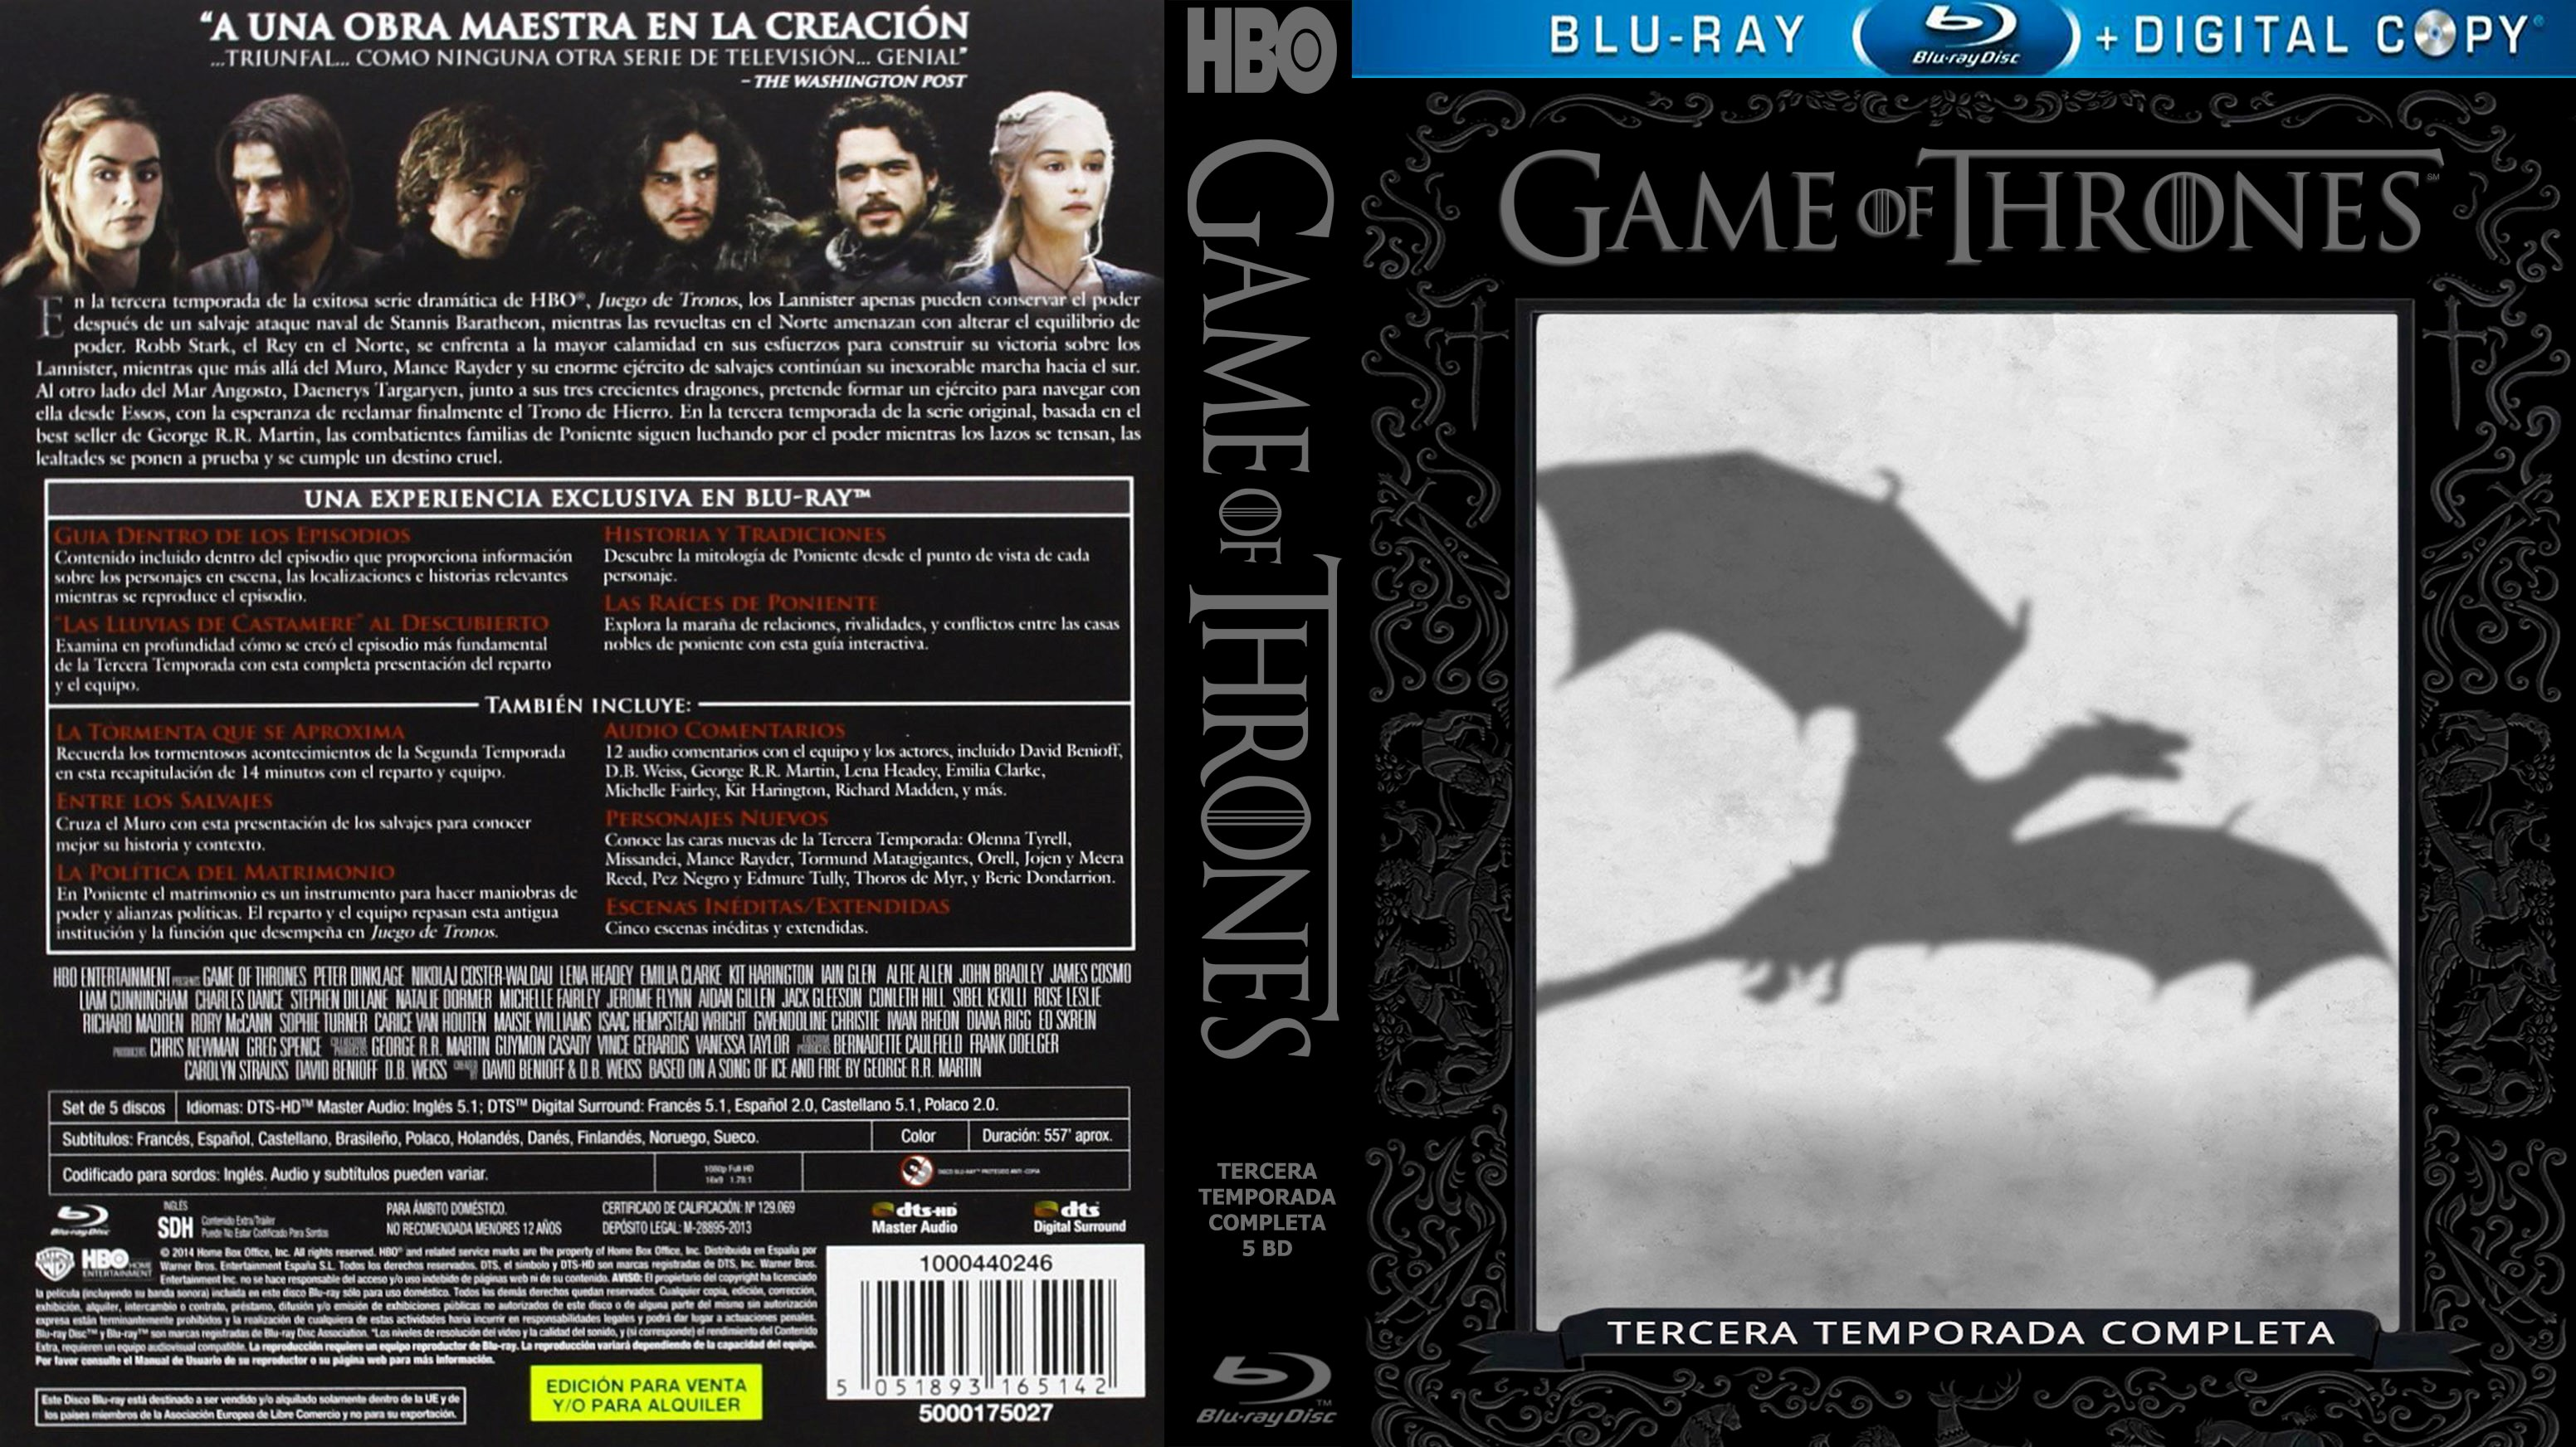 game of thrones season 3 download with subtitles